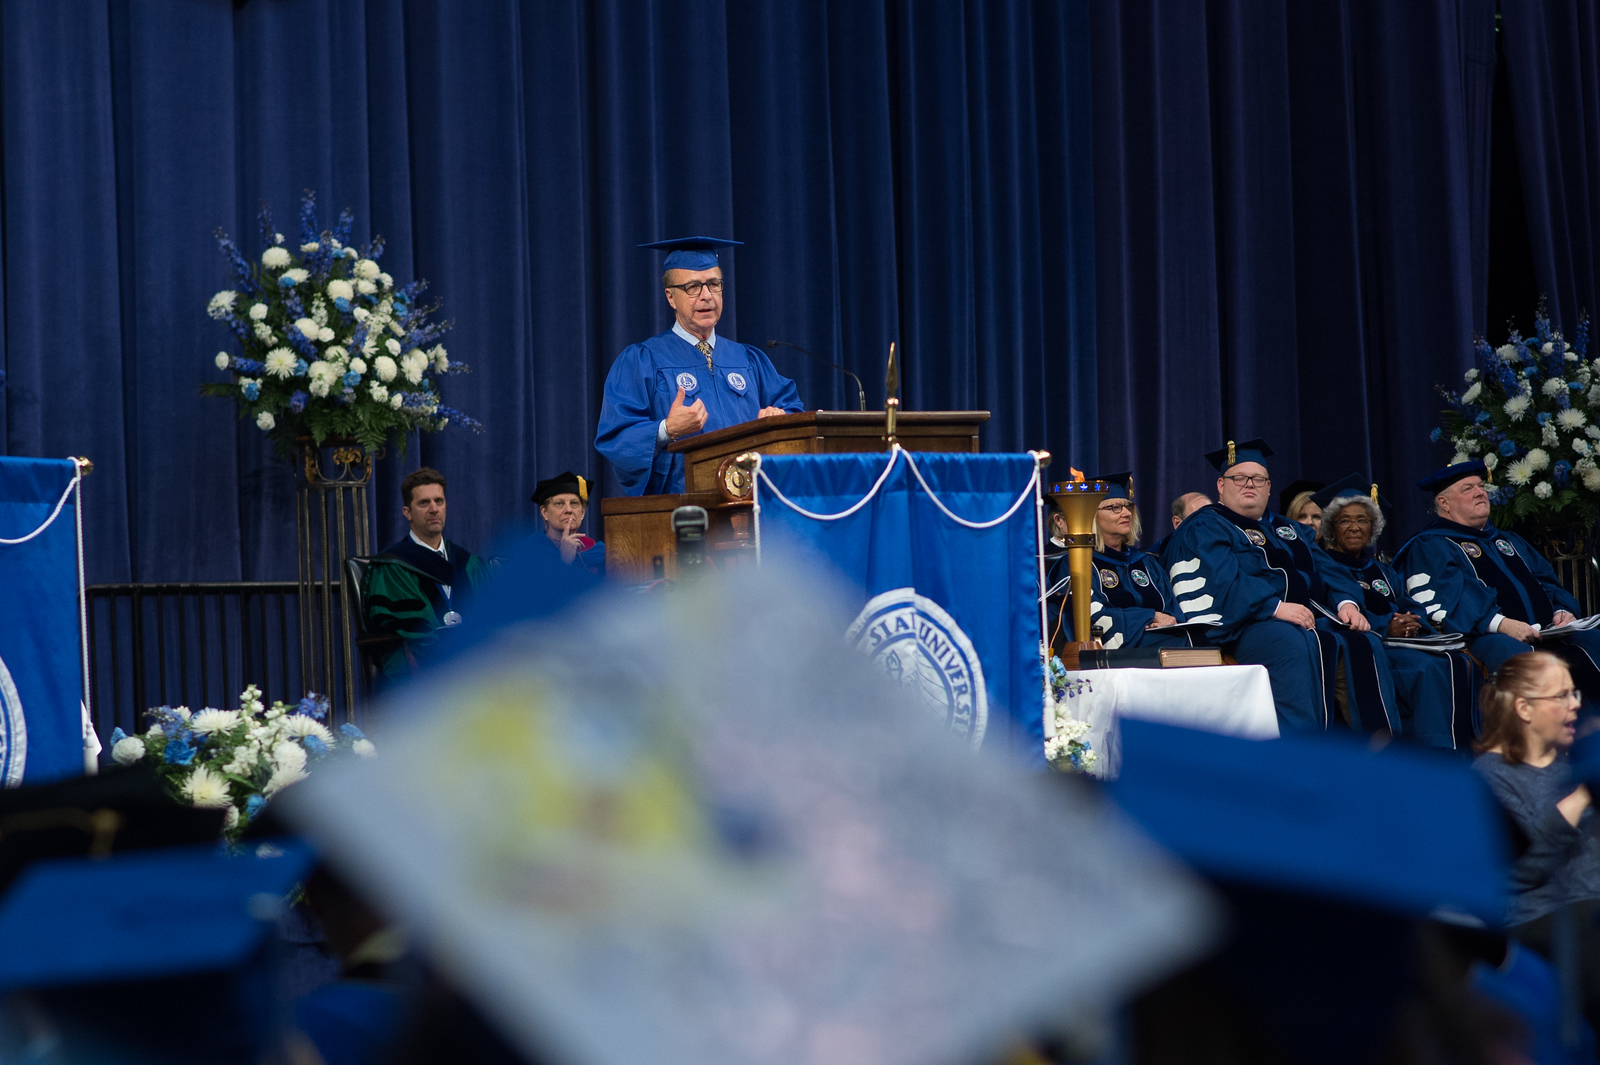 More than 1,800 Sycamores participate in commencement